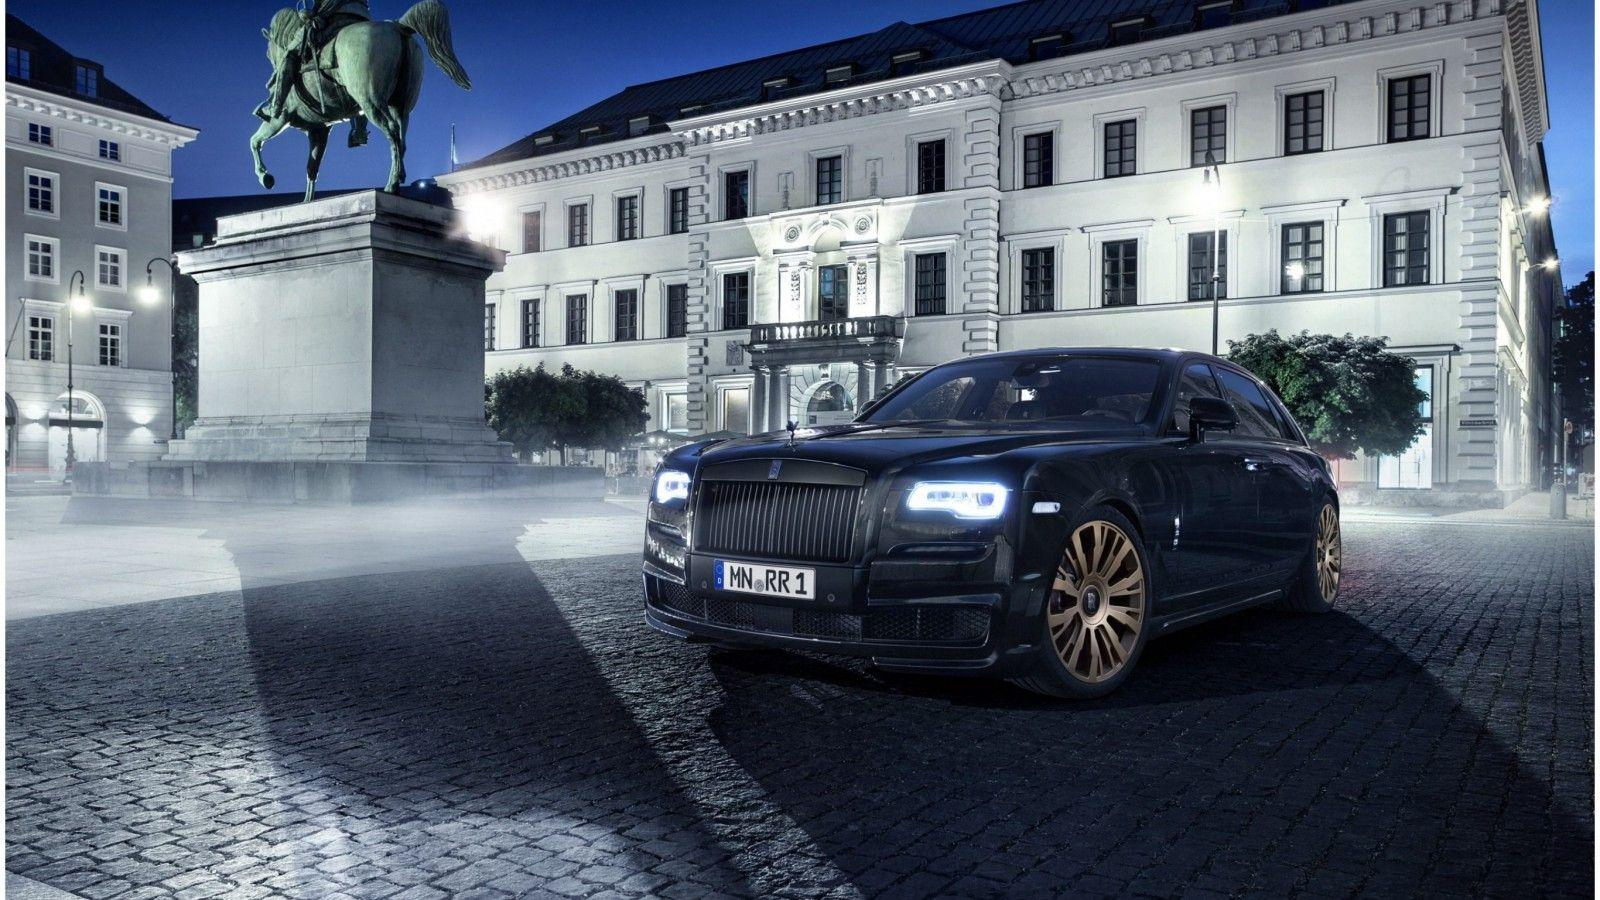 Wallpaper Rolls Royce Ghost Car Hd > With Gost Cars Full Pics Of ...